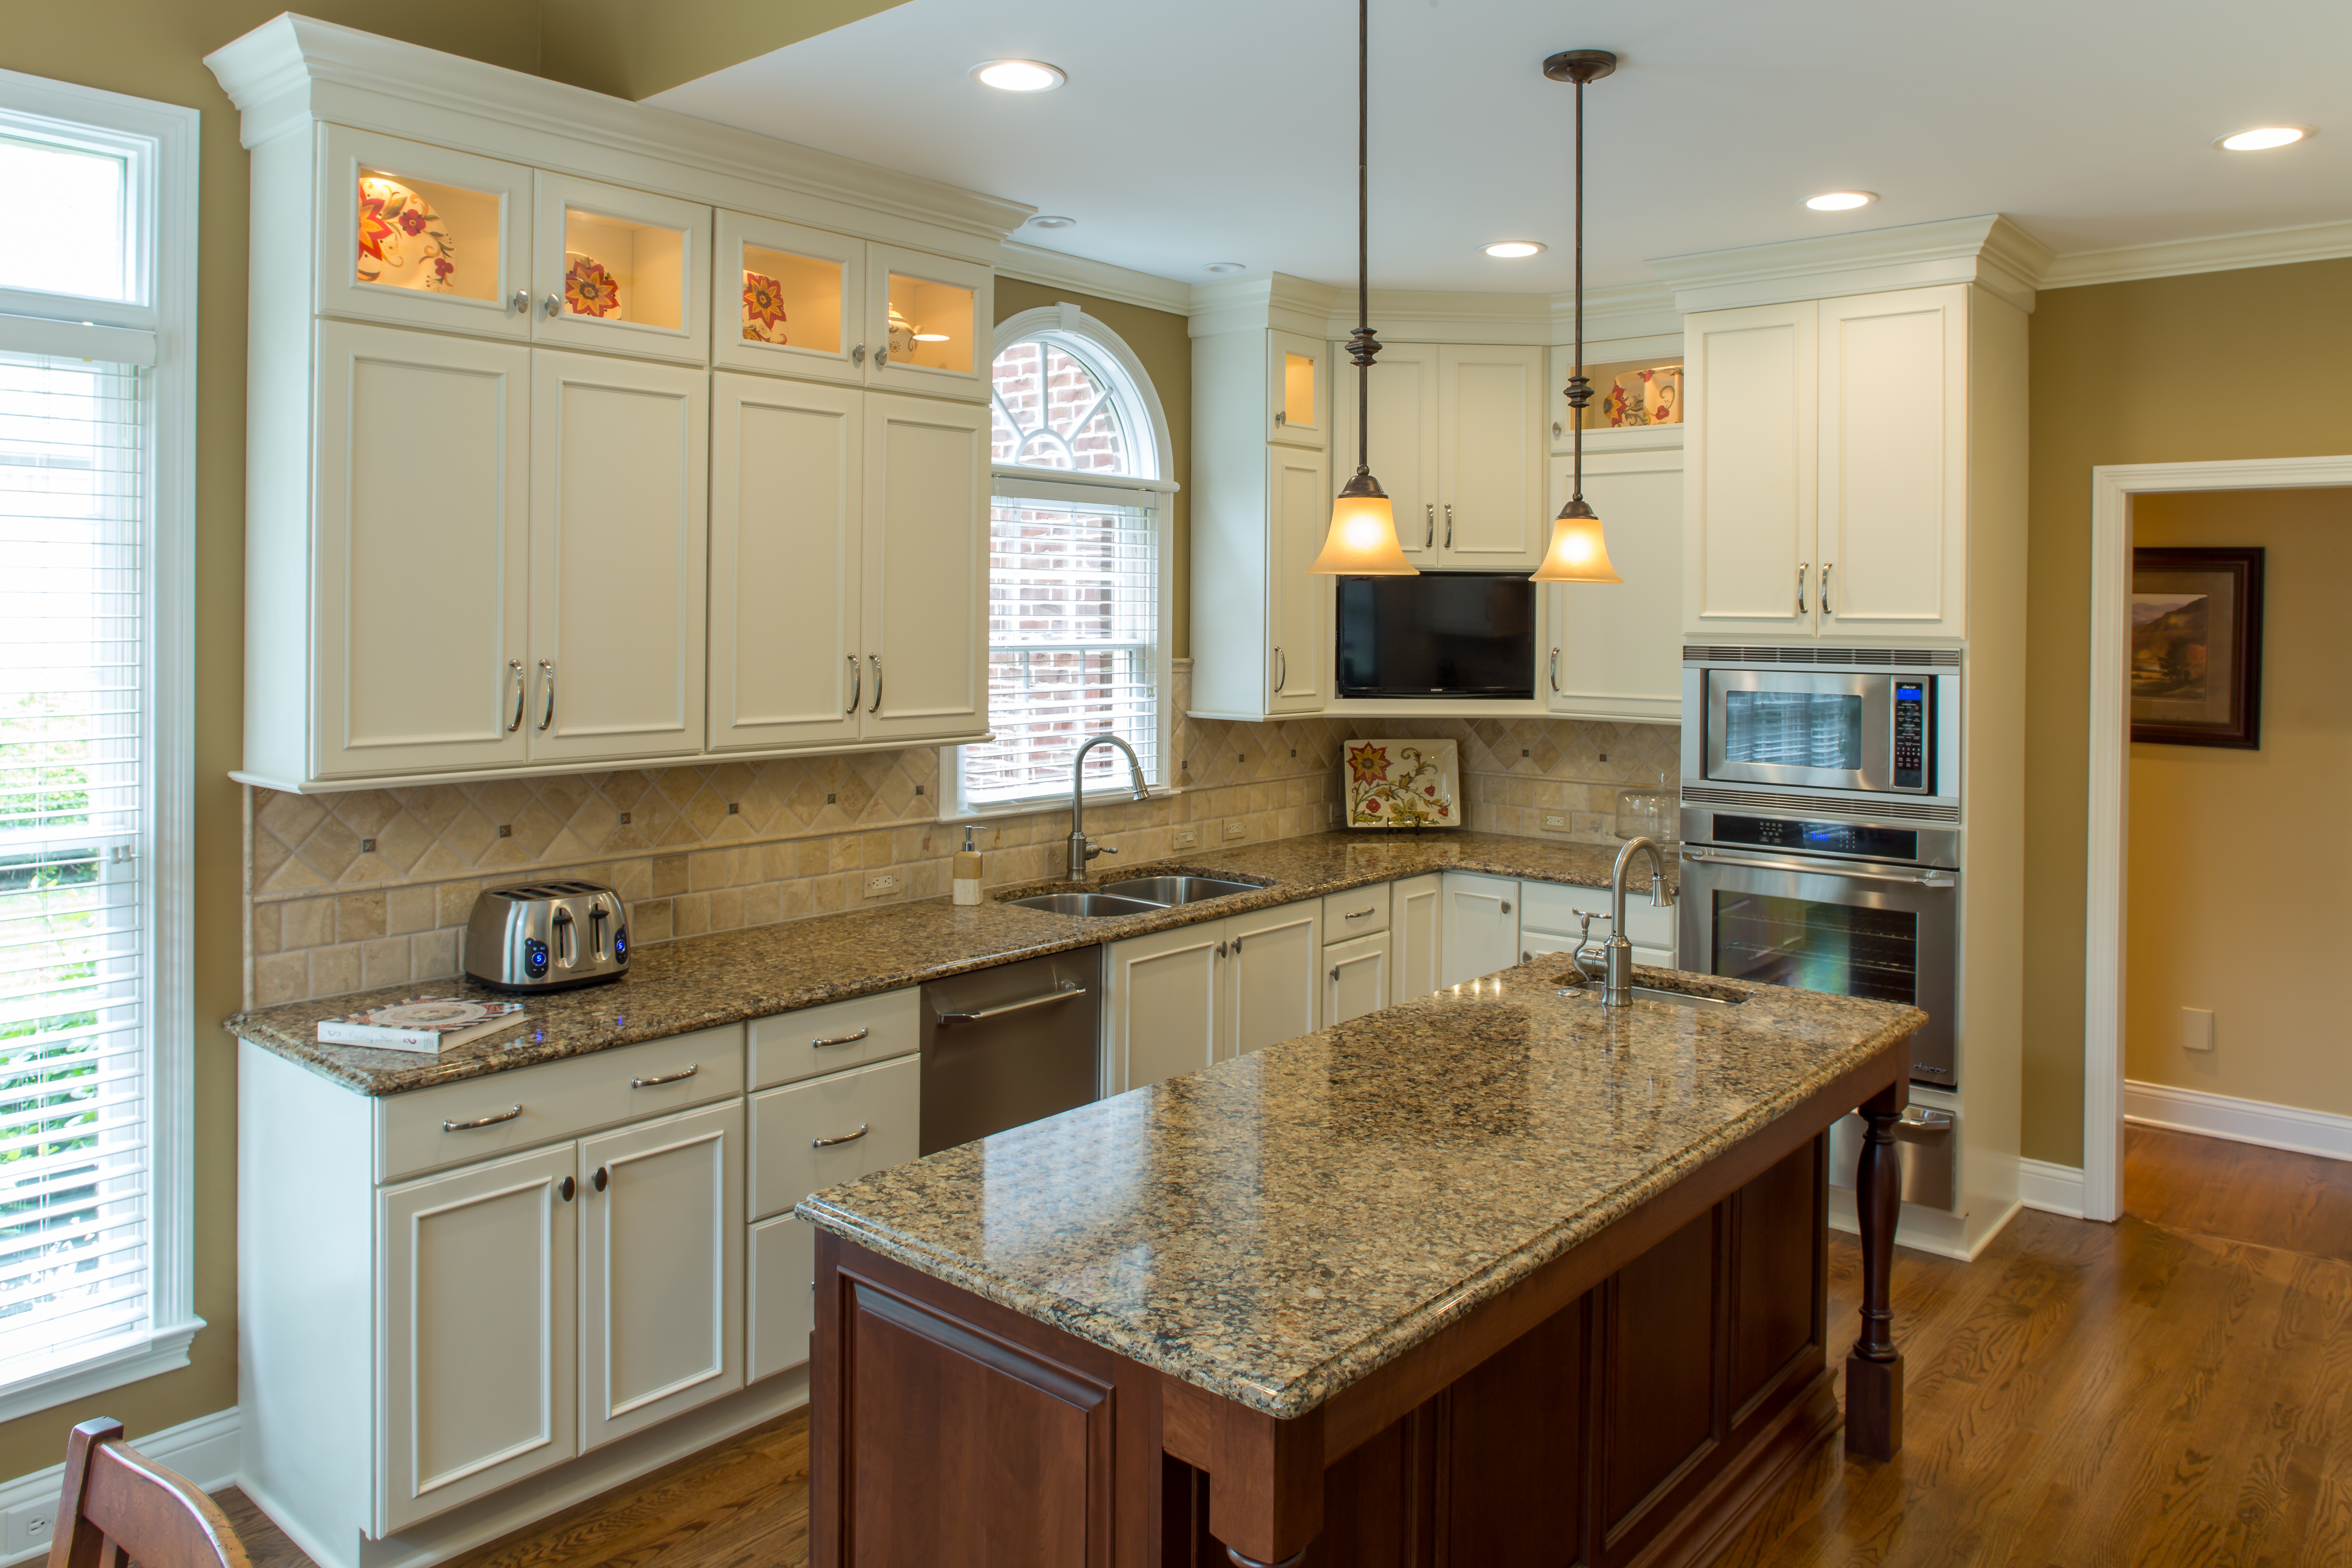 Showplace Kitchen in Painted Soft Cream